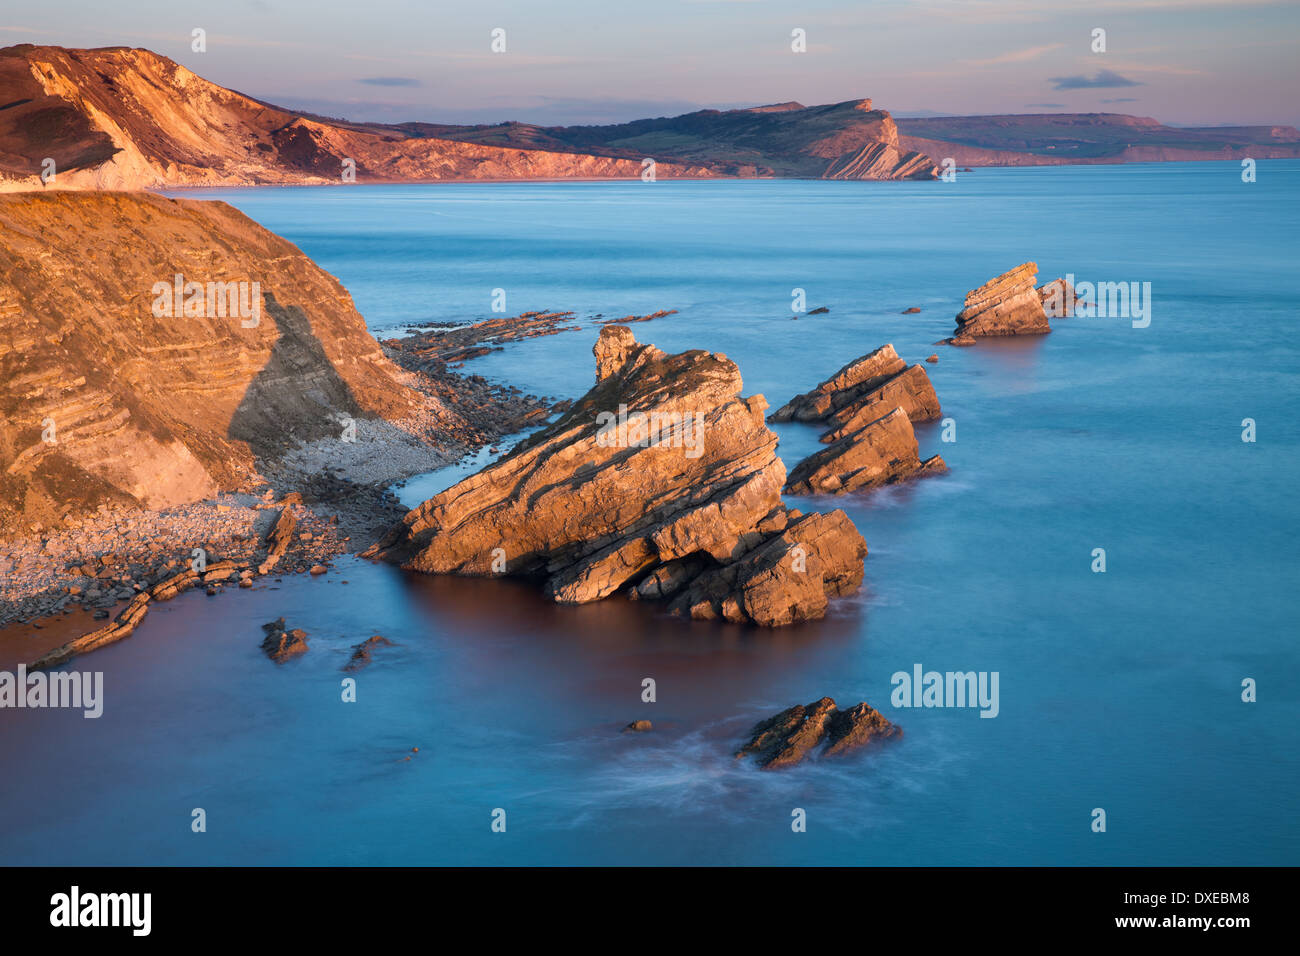 Mupe Bay, Jurassic Coast, Dorset, England, UK - Stock Image